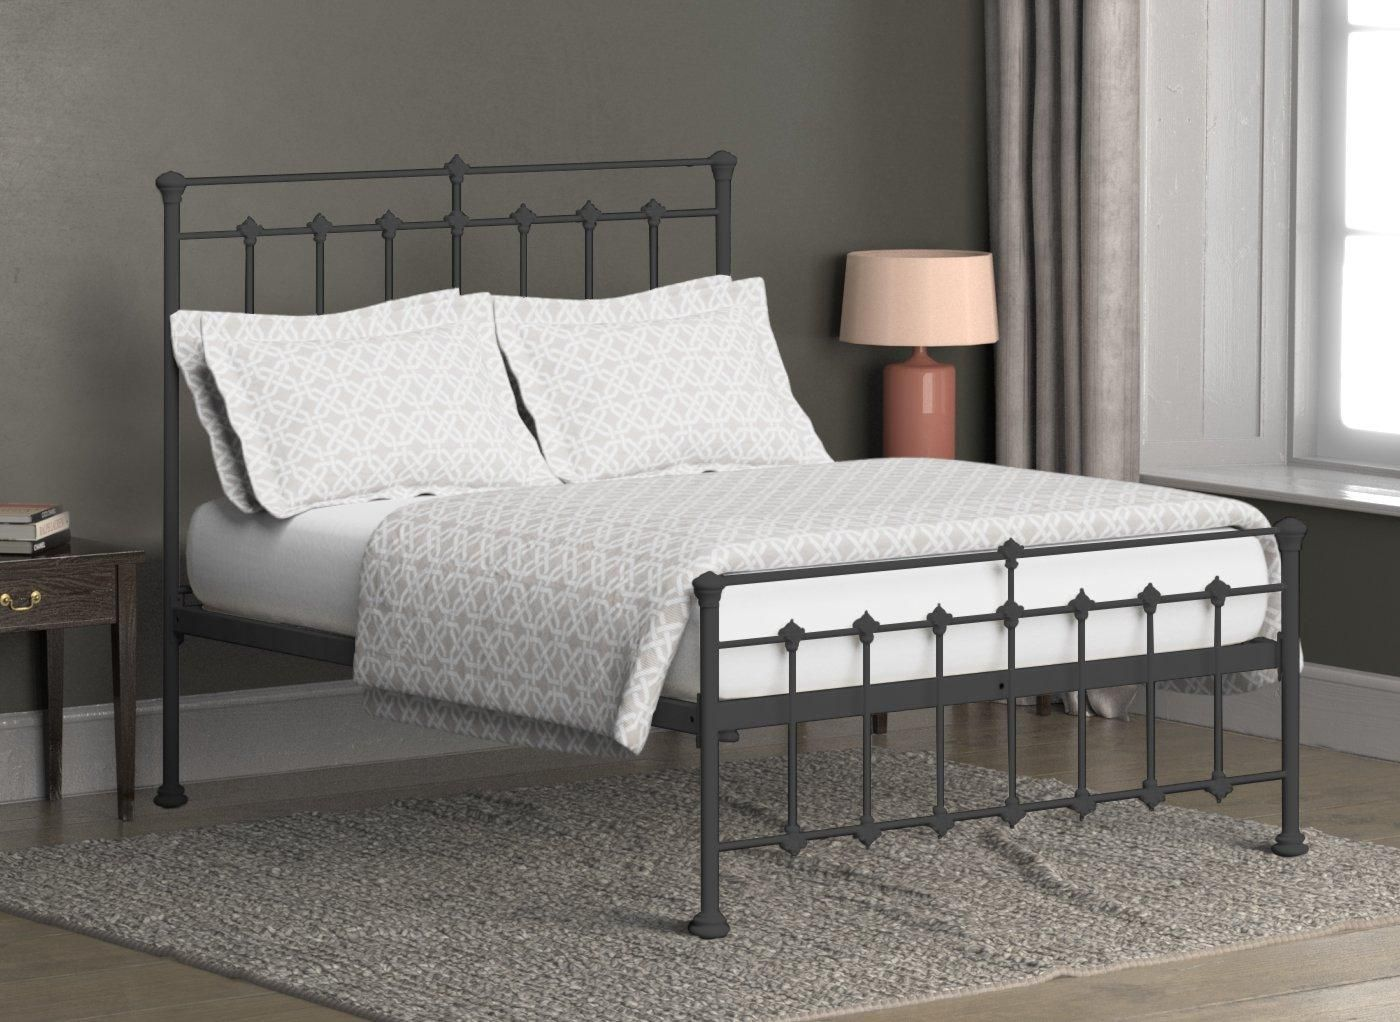 Edwardian Metal Bed Frame Bed frame, Cast iron bed frame